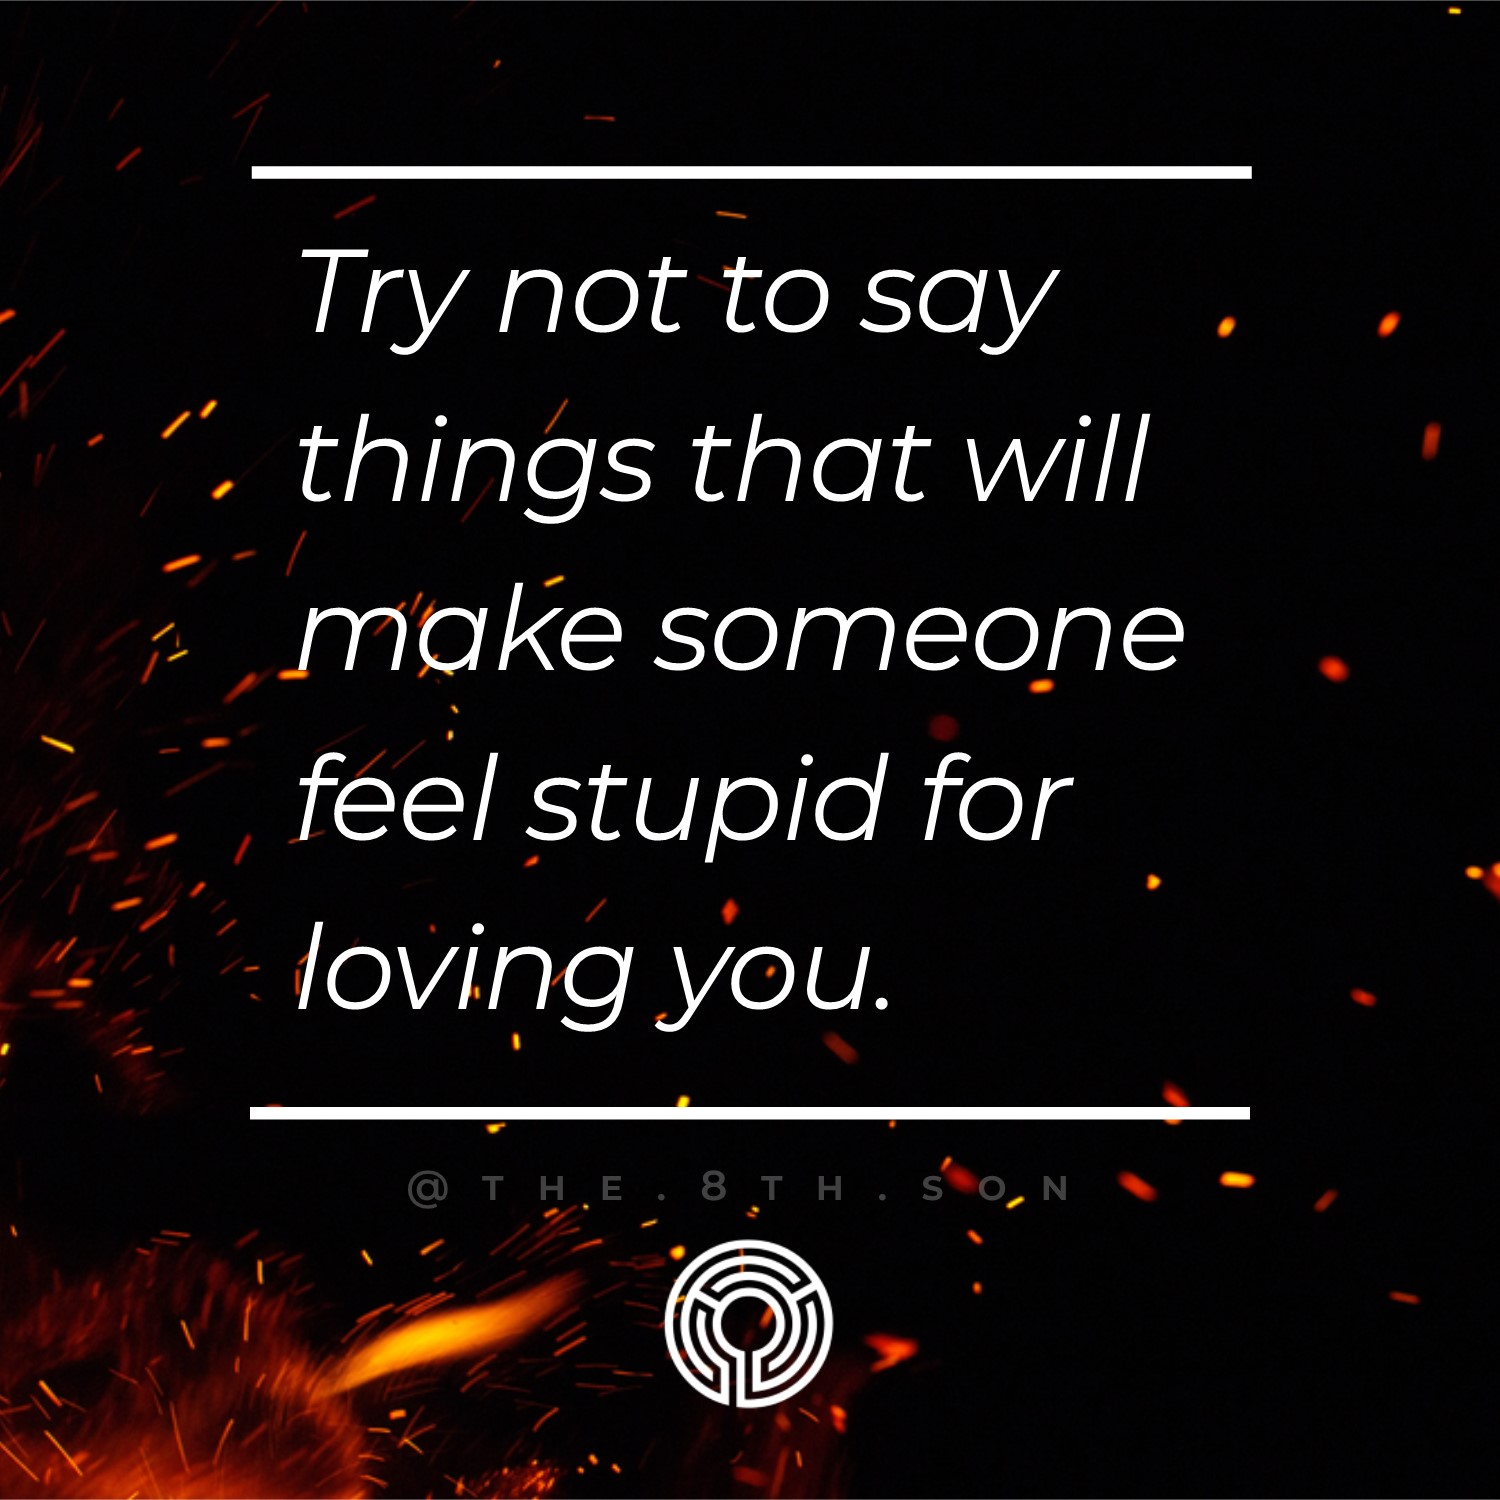 Don't be a dumbass. Restrain your tongue. We do a lot of damage when we let our emotions get the better of us.